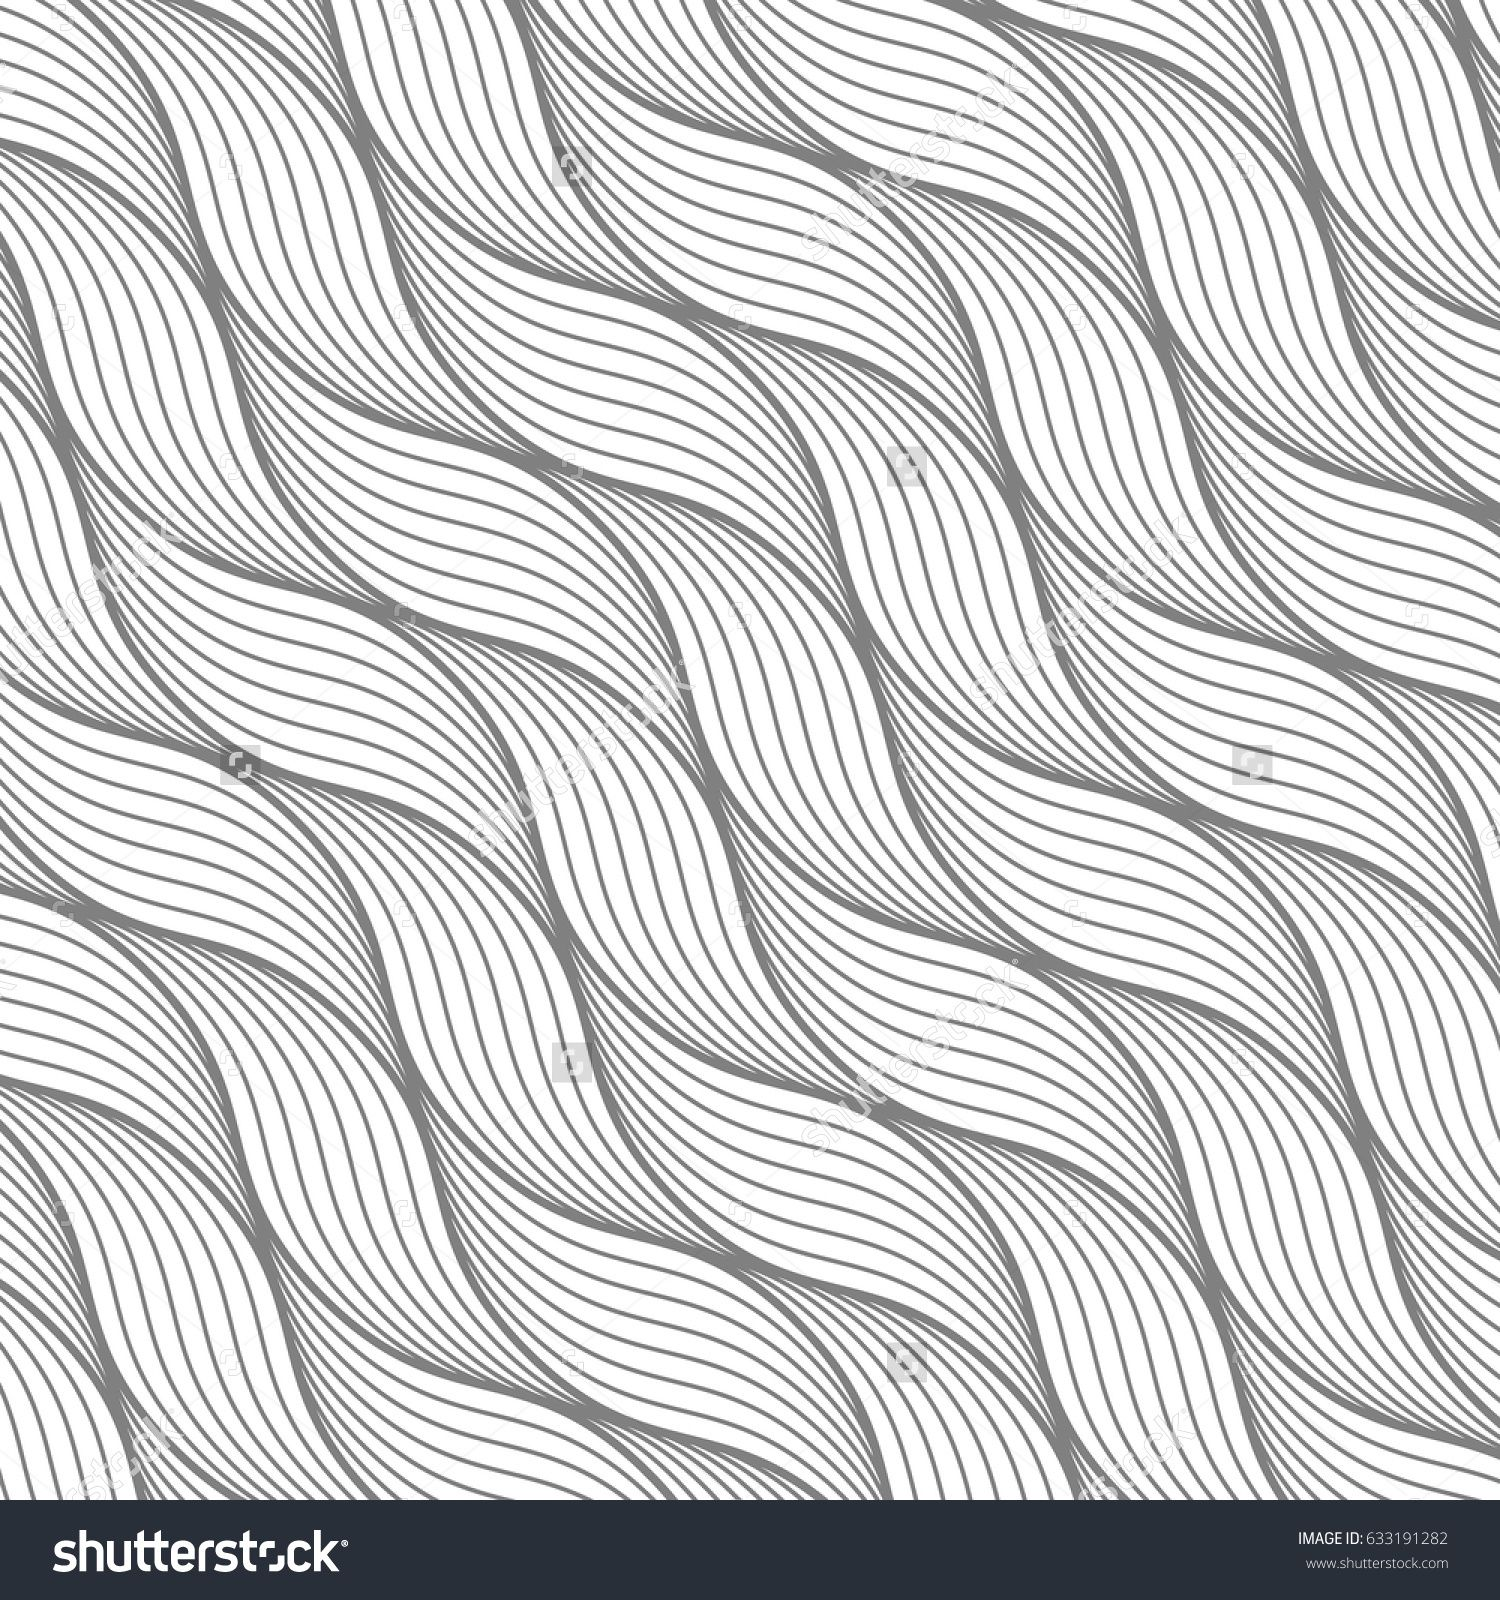 a4847962 Geometric pattern with abstract waves, lines, stripes. A seamless vector  background. Vector illustration